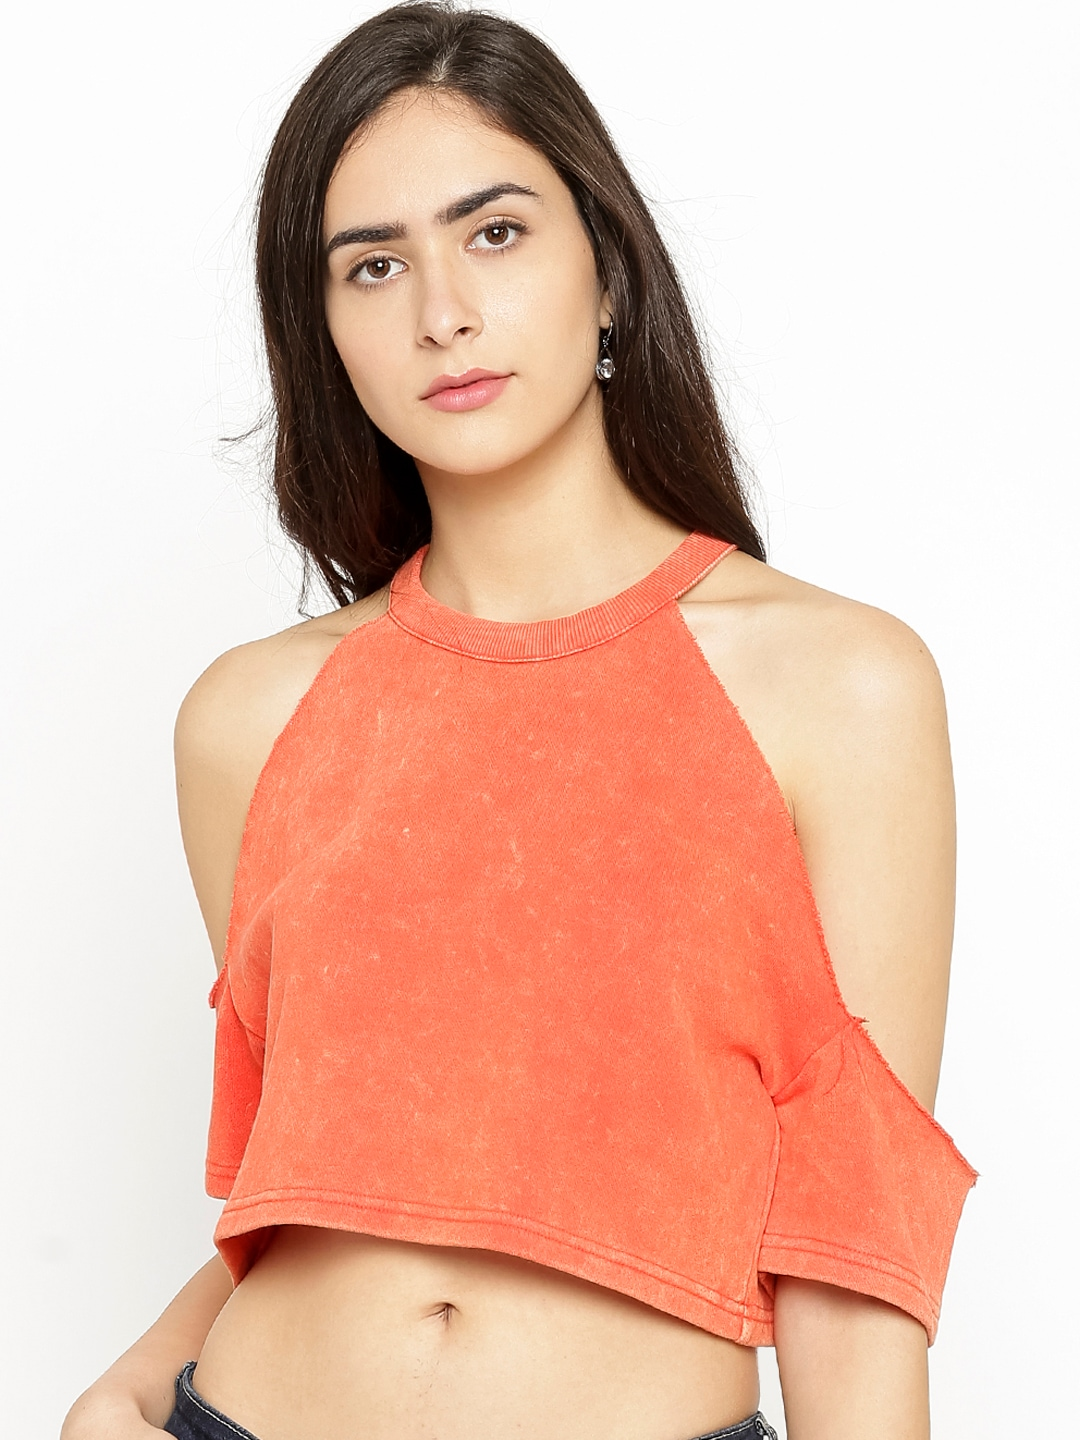 f0888ade082 Orange Basics Tops - Buy Orange Basics Tops online in India